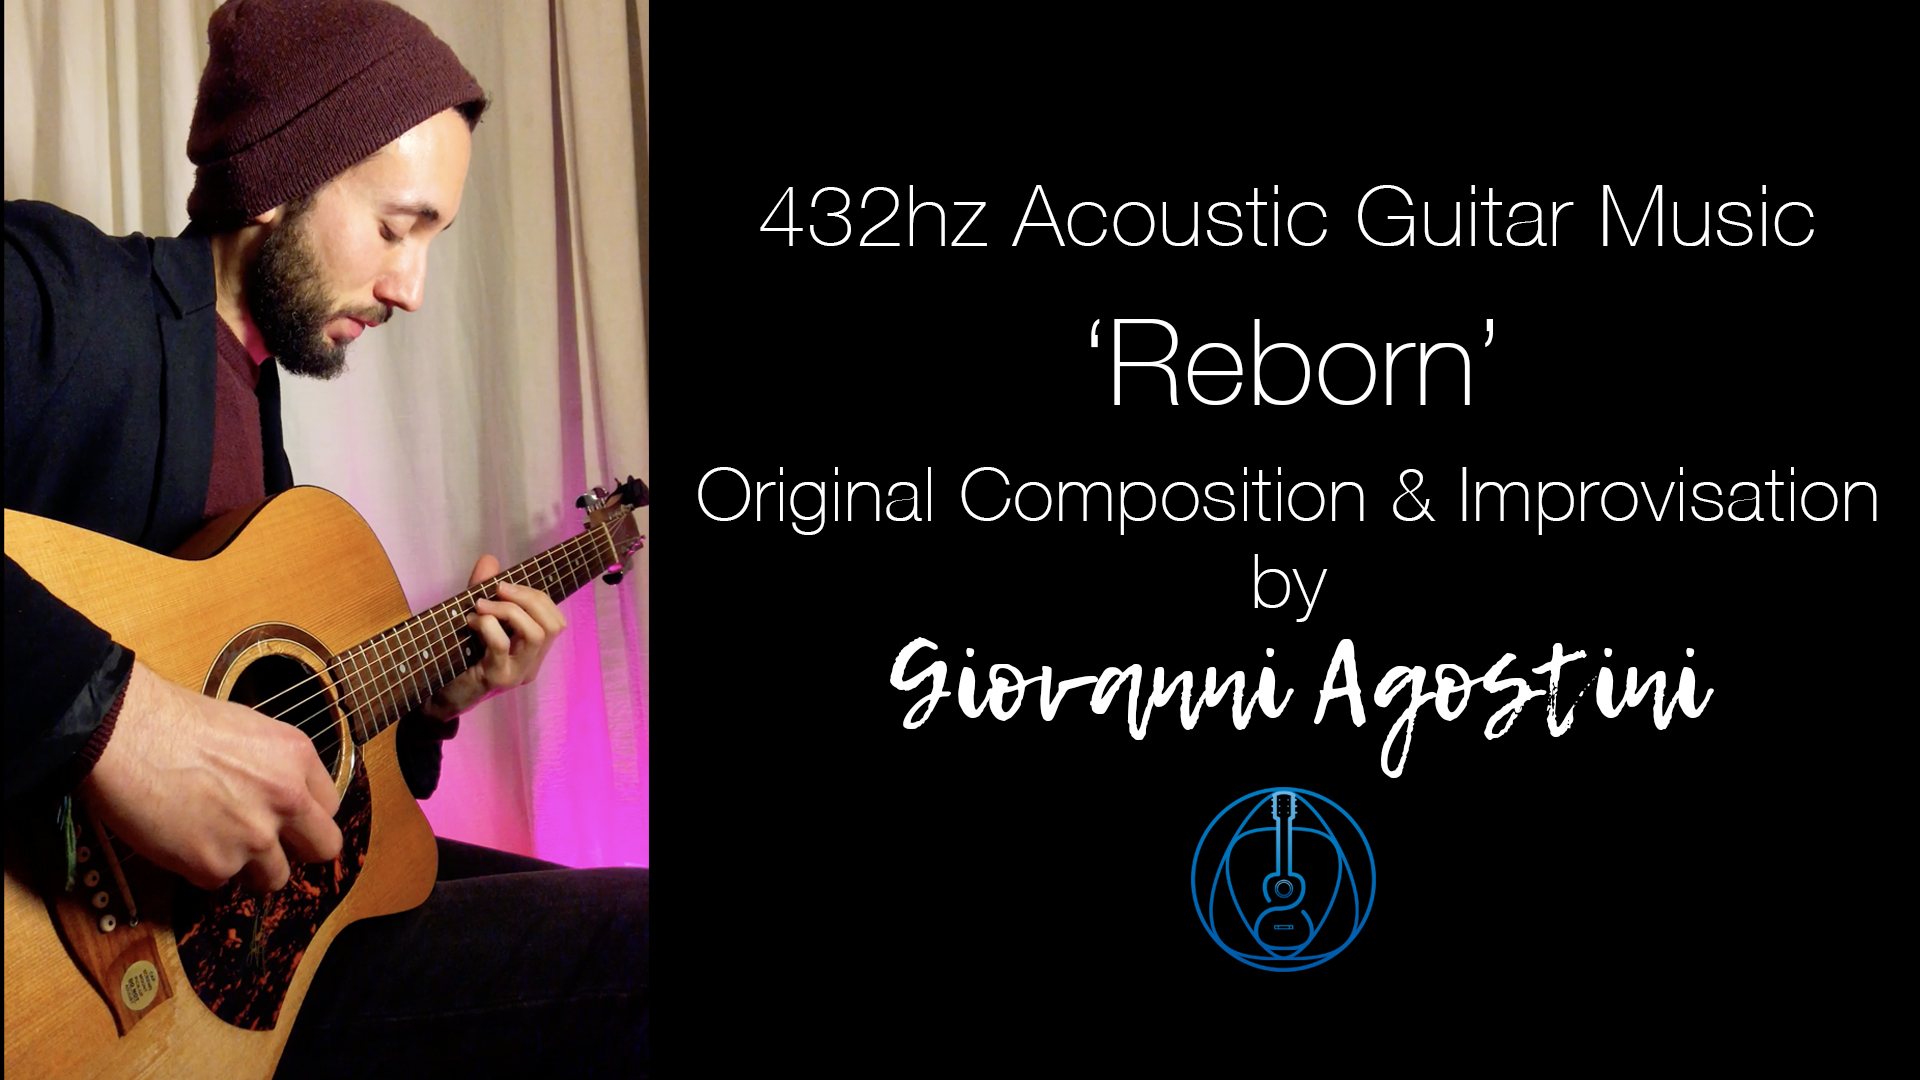 Reborn (live improvisation) | 432hz | Original Composition Idea